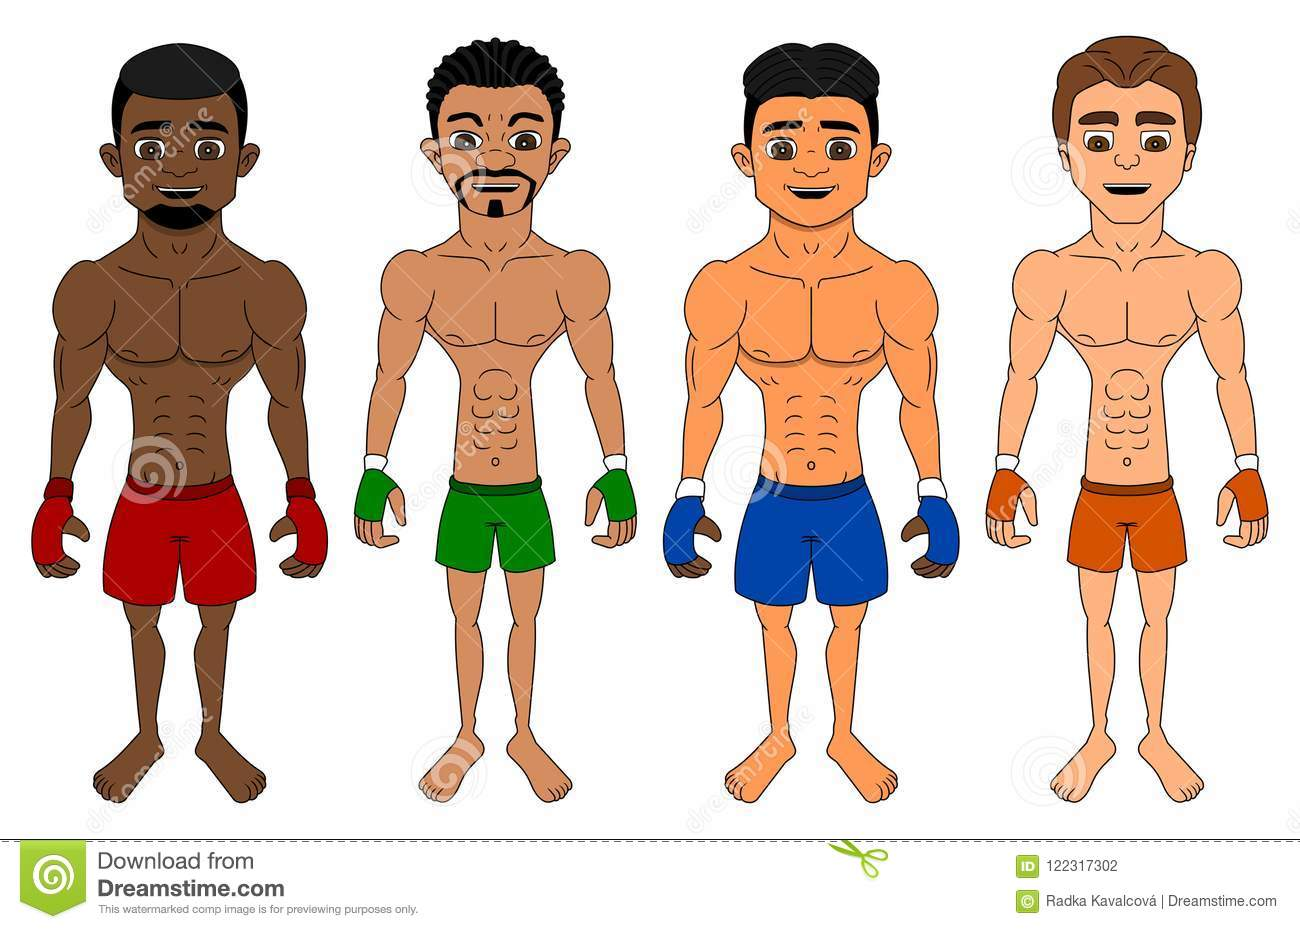 Cartoon of diverse flyweight MMA fighters